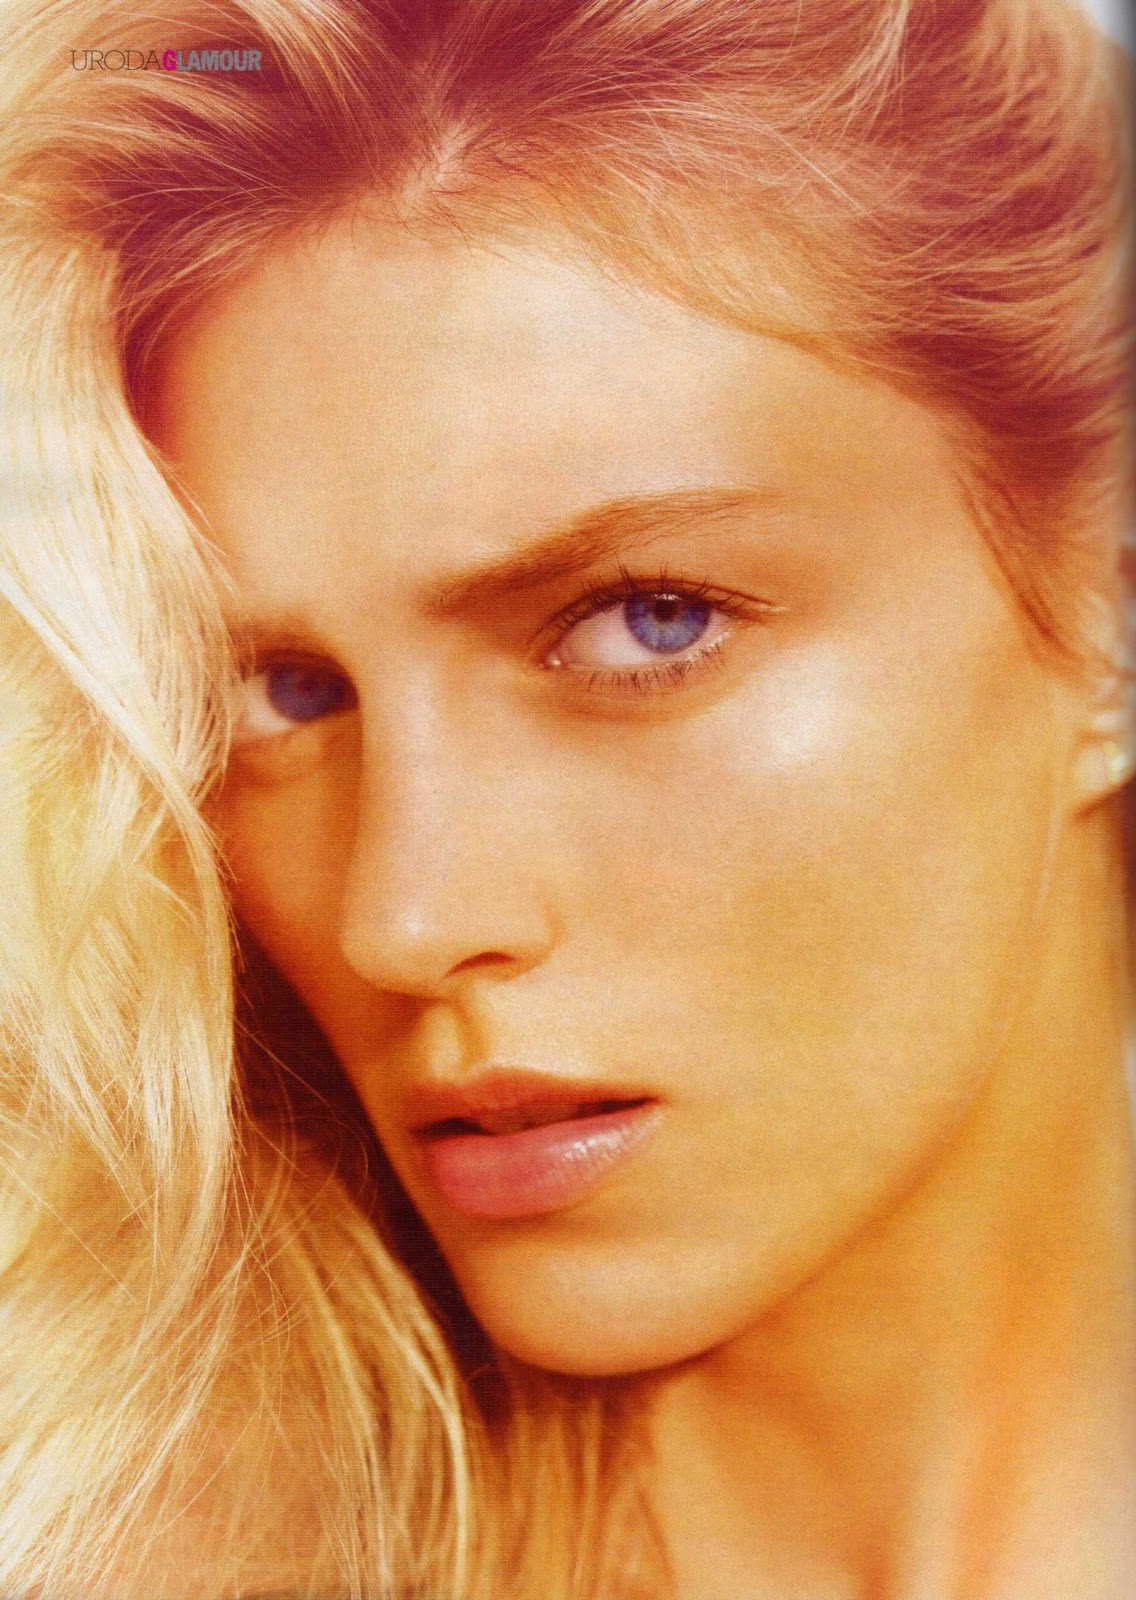 Anja Rubik Glamour March 2011 Hq - Models Inspiration-2908